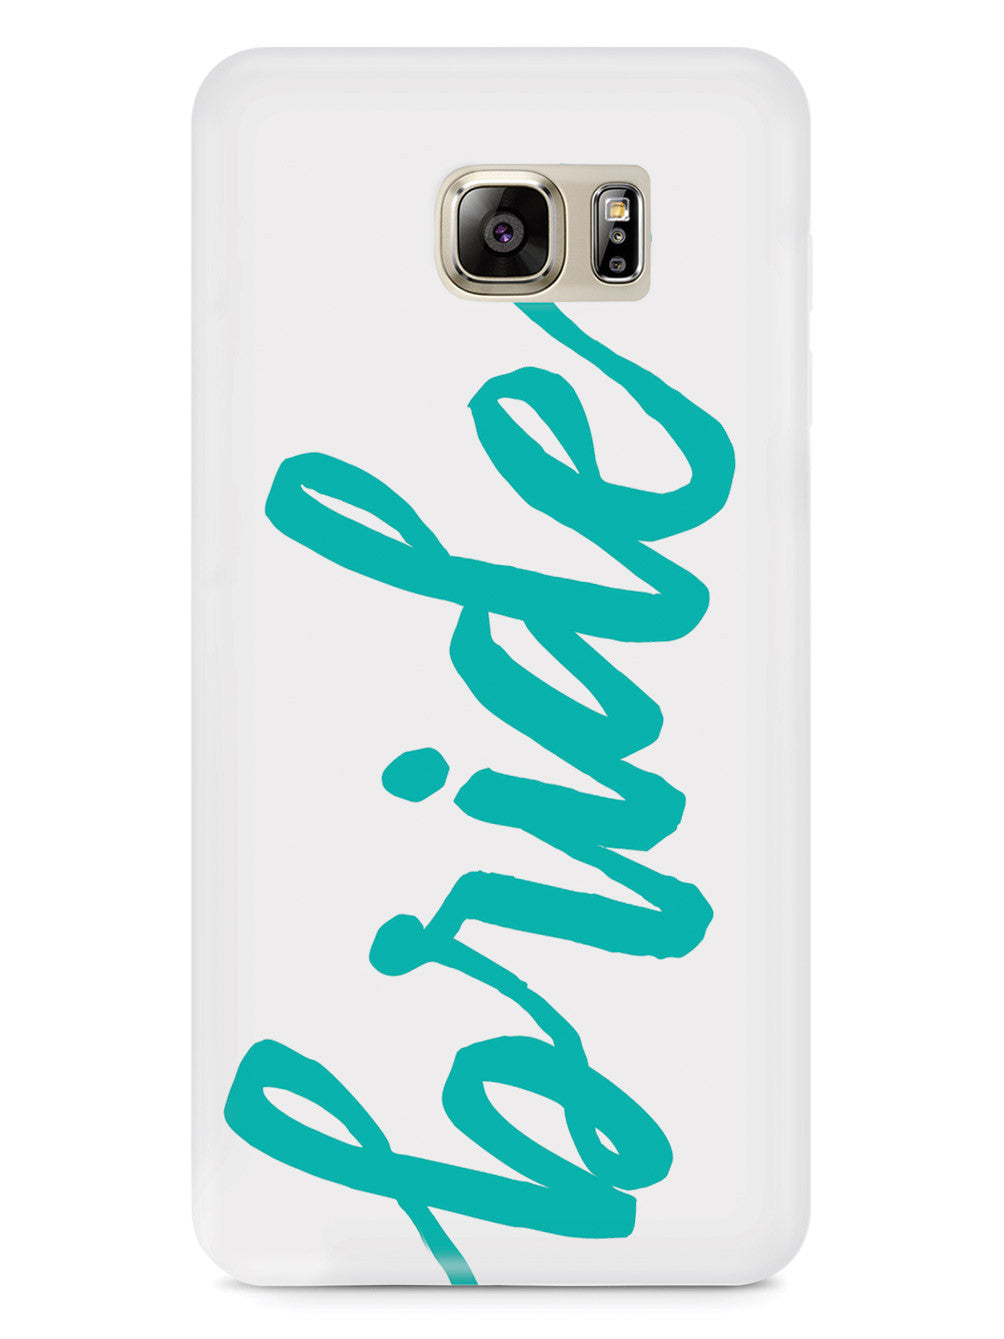 Bride - Teal Case